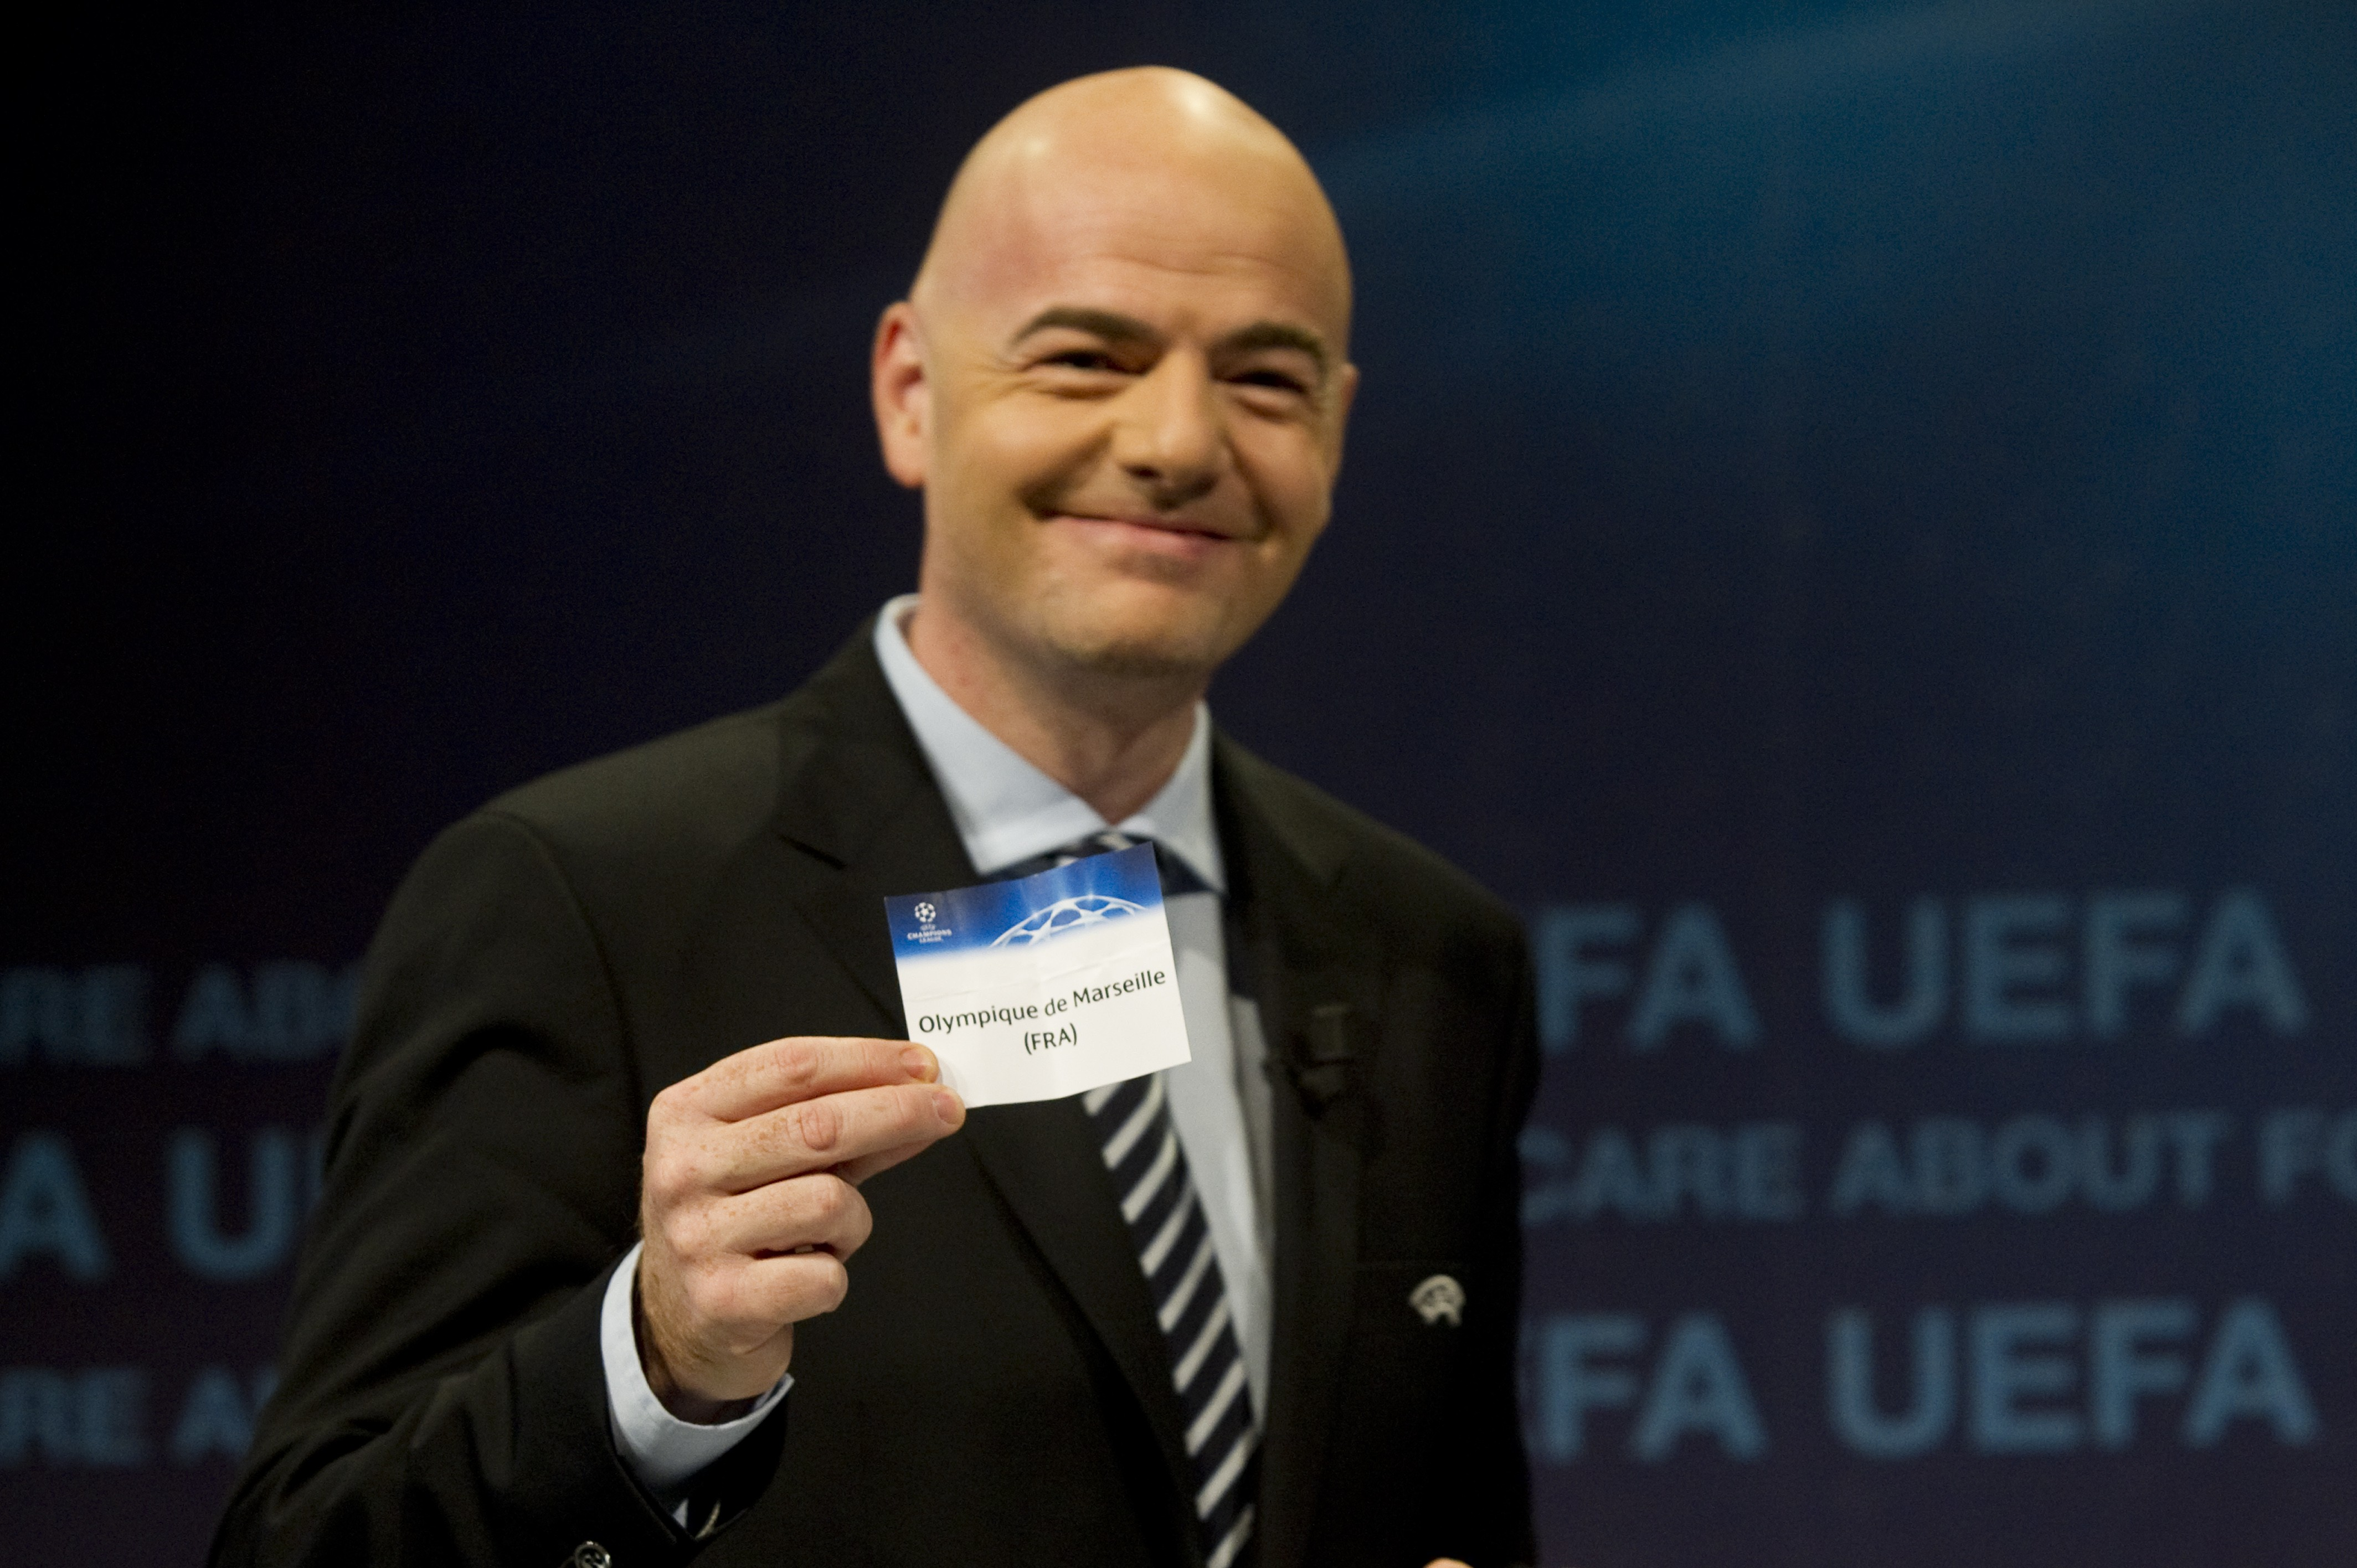 Loting Champions League 2019 Image: LIVE! Loting Champions League